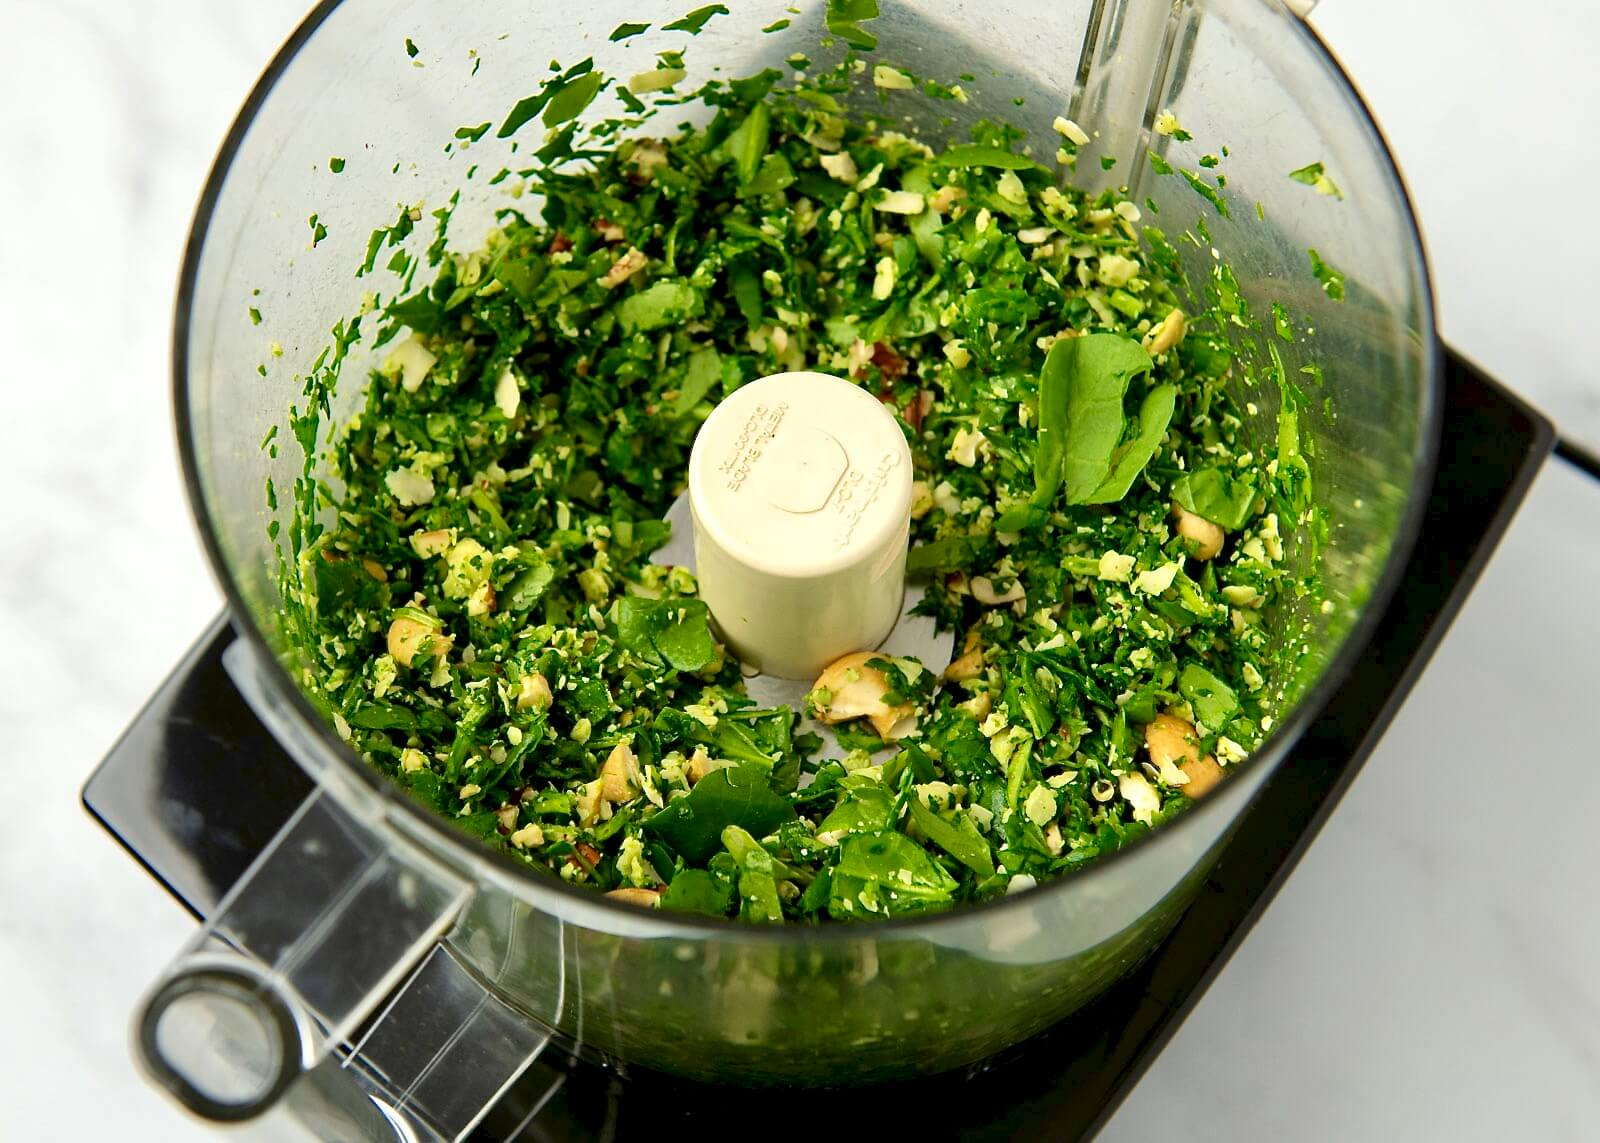 Easy, accessible, and endlessly versatile, this flavorful pesto is especially ideal when fresh herbs aren't available. Perfect for adding flavor to pasta, pizza and flatbread, sauces, sandwiches, and so much more, the simple recipe can be customized with a variety of nuts, seeds, and cheeses.Plus it maintains its vibrant green color and freezes well!